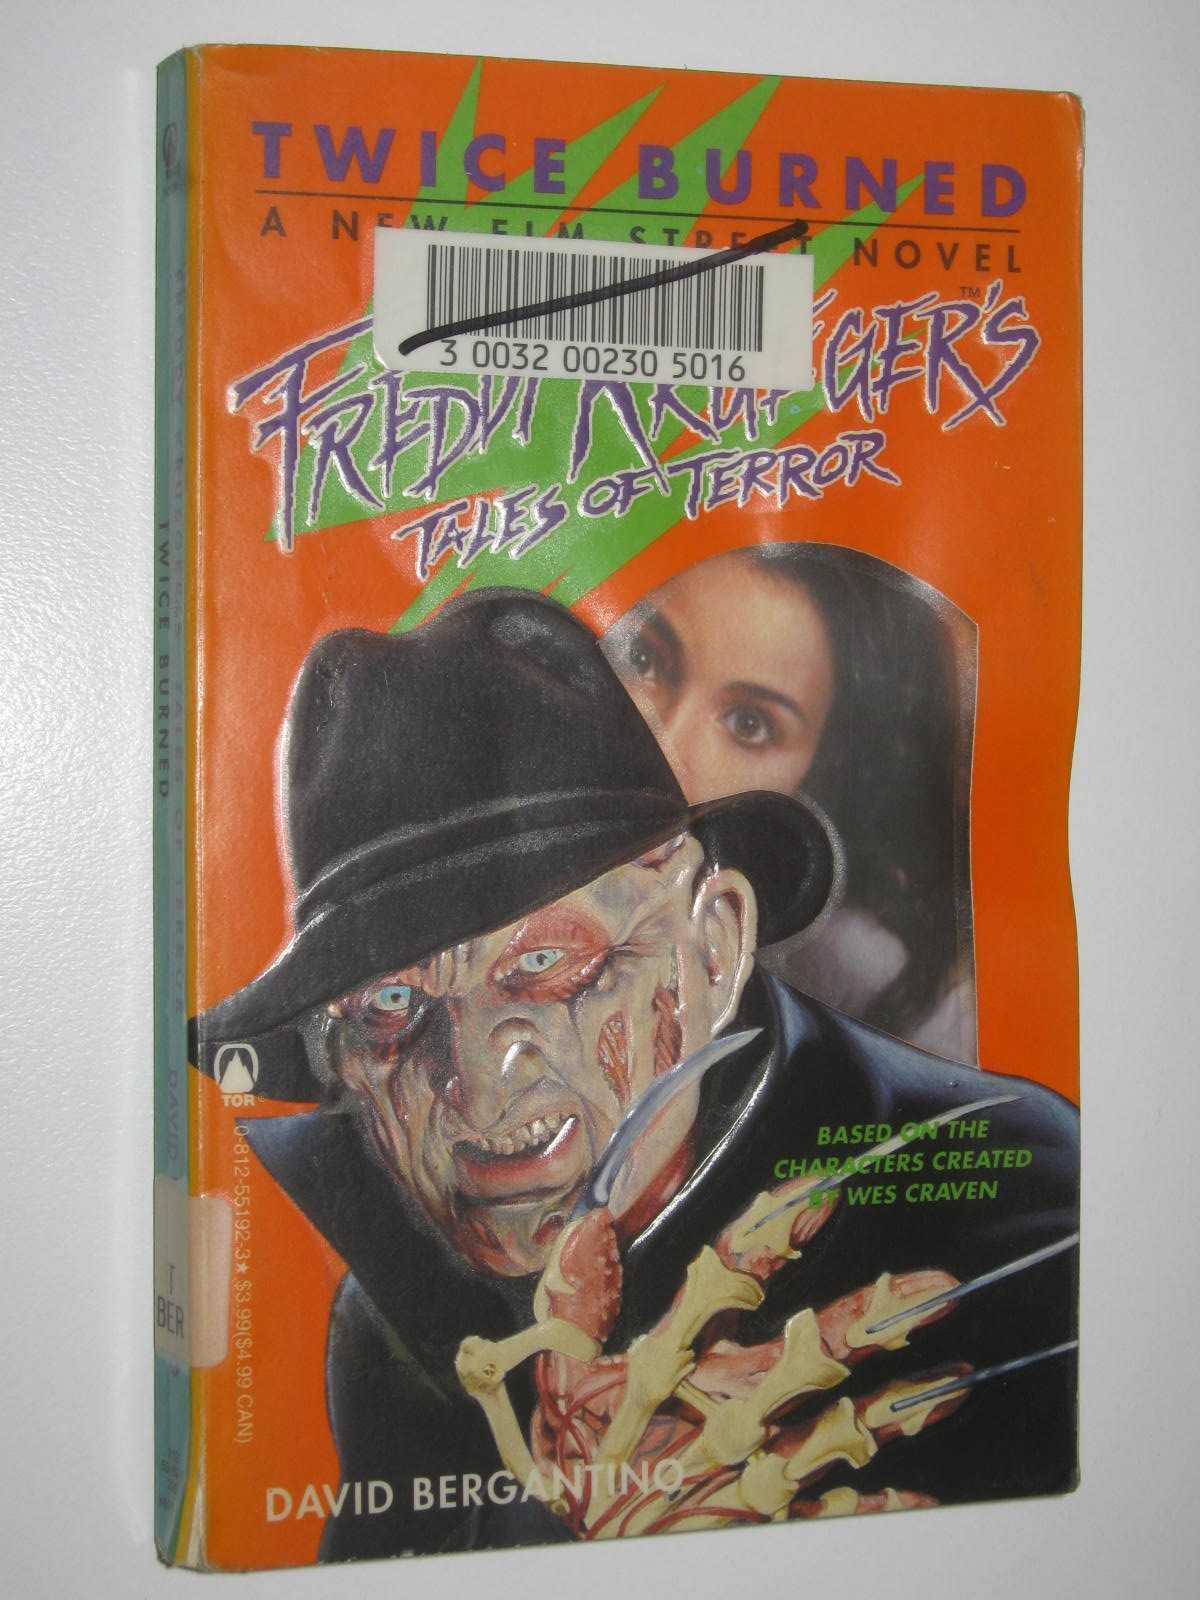 Image for Twice Burned - Freddy Kruger's Tales Of Terror Series